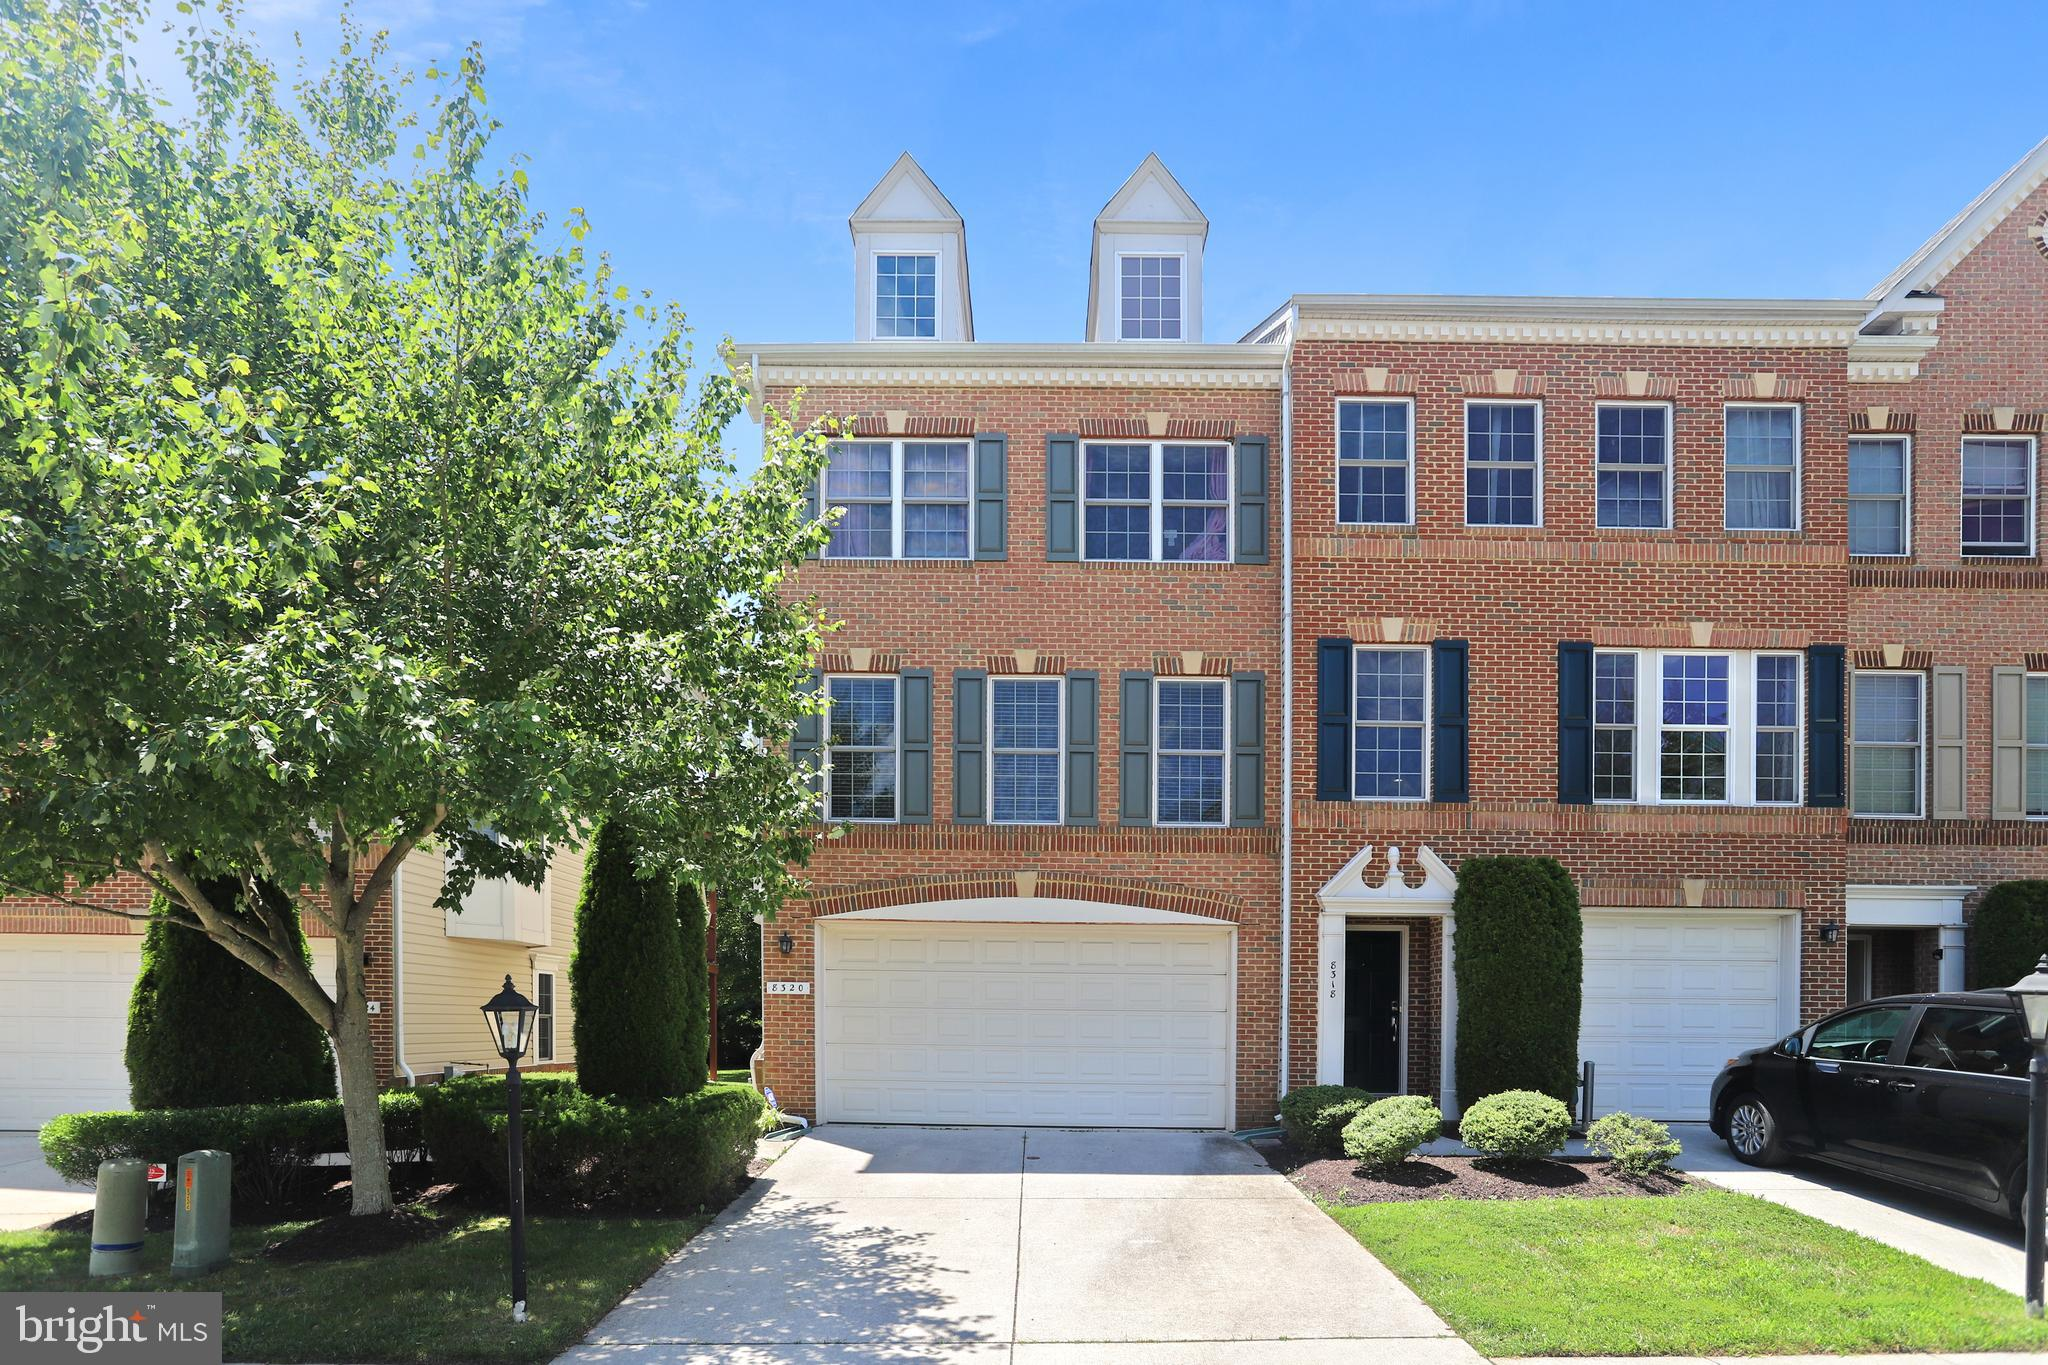 A MUST SEE! Gorgeous 3 BR/ 2 Full & 2 Half BA Brick-Front & Side END-UNIT Townhouse with 2 car garag